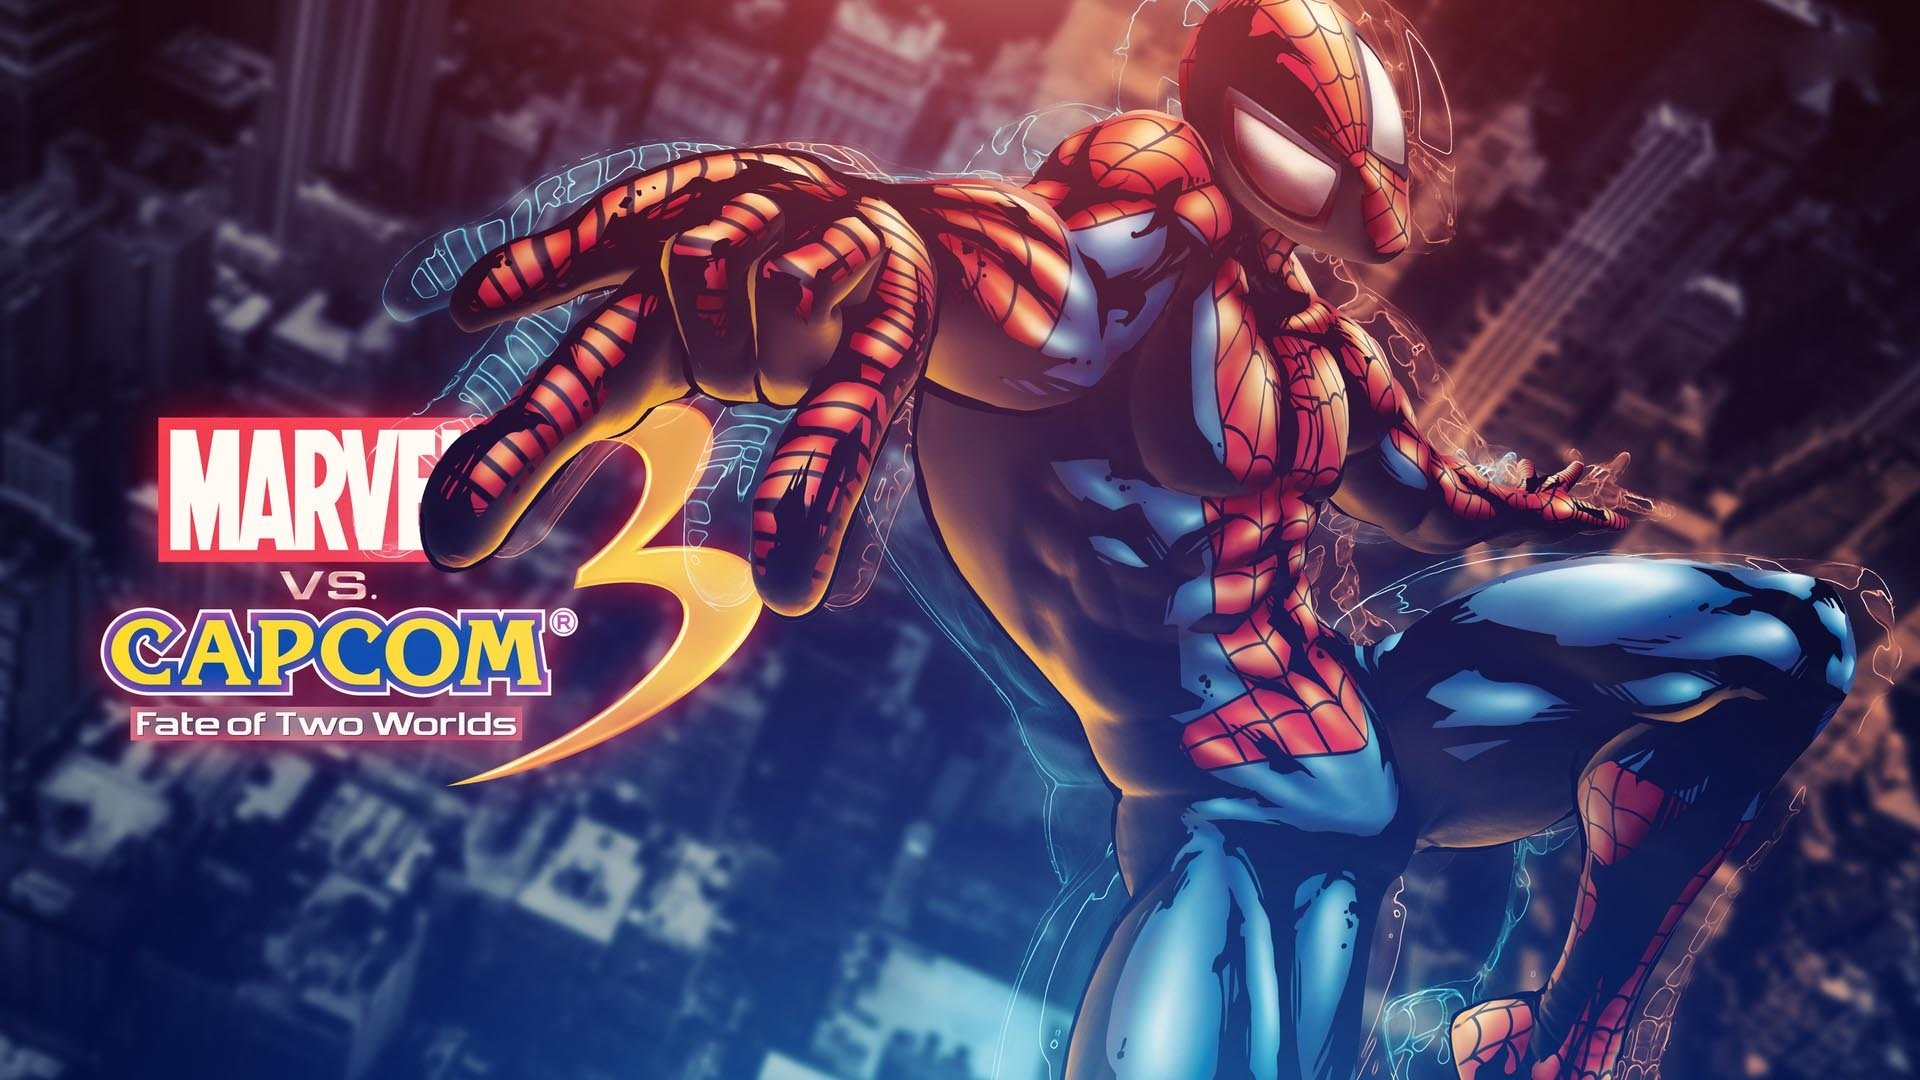 1920x1080 Popular characters like Ryu, Wolverine, Akuma, Iron Man, Spider-Man, Dante,  Deadpool and loads more.